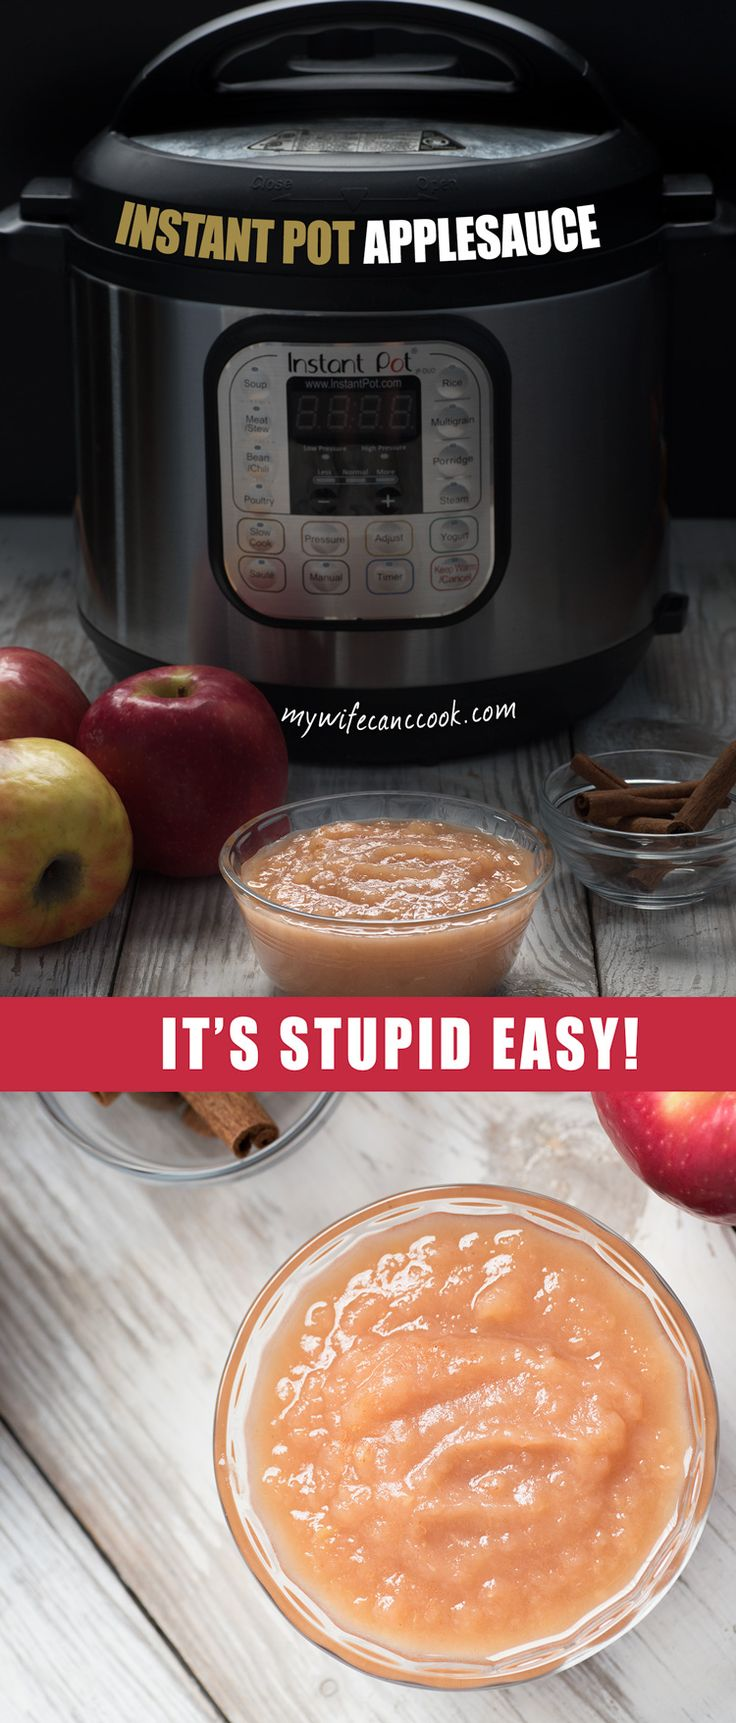 Instant Pot applesauce removes the work from making homemade applesauce without removing the flavor. No more stirring, no more milling, let the Instant Pot do the work and enjoy the results. You've got questions, we've got answers. Click through and we'll answer all your Instant Pot applesauce questions.